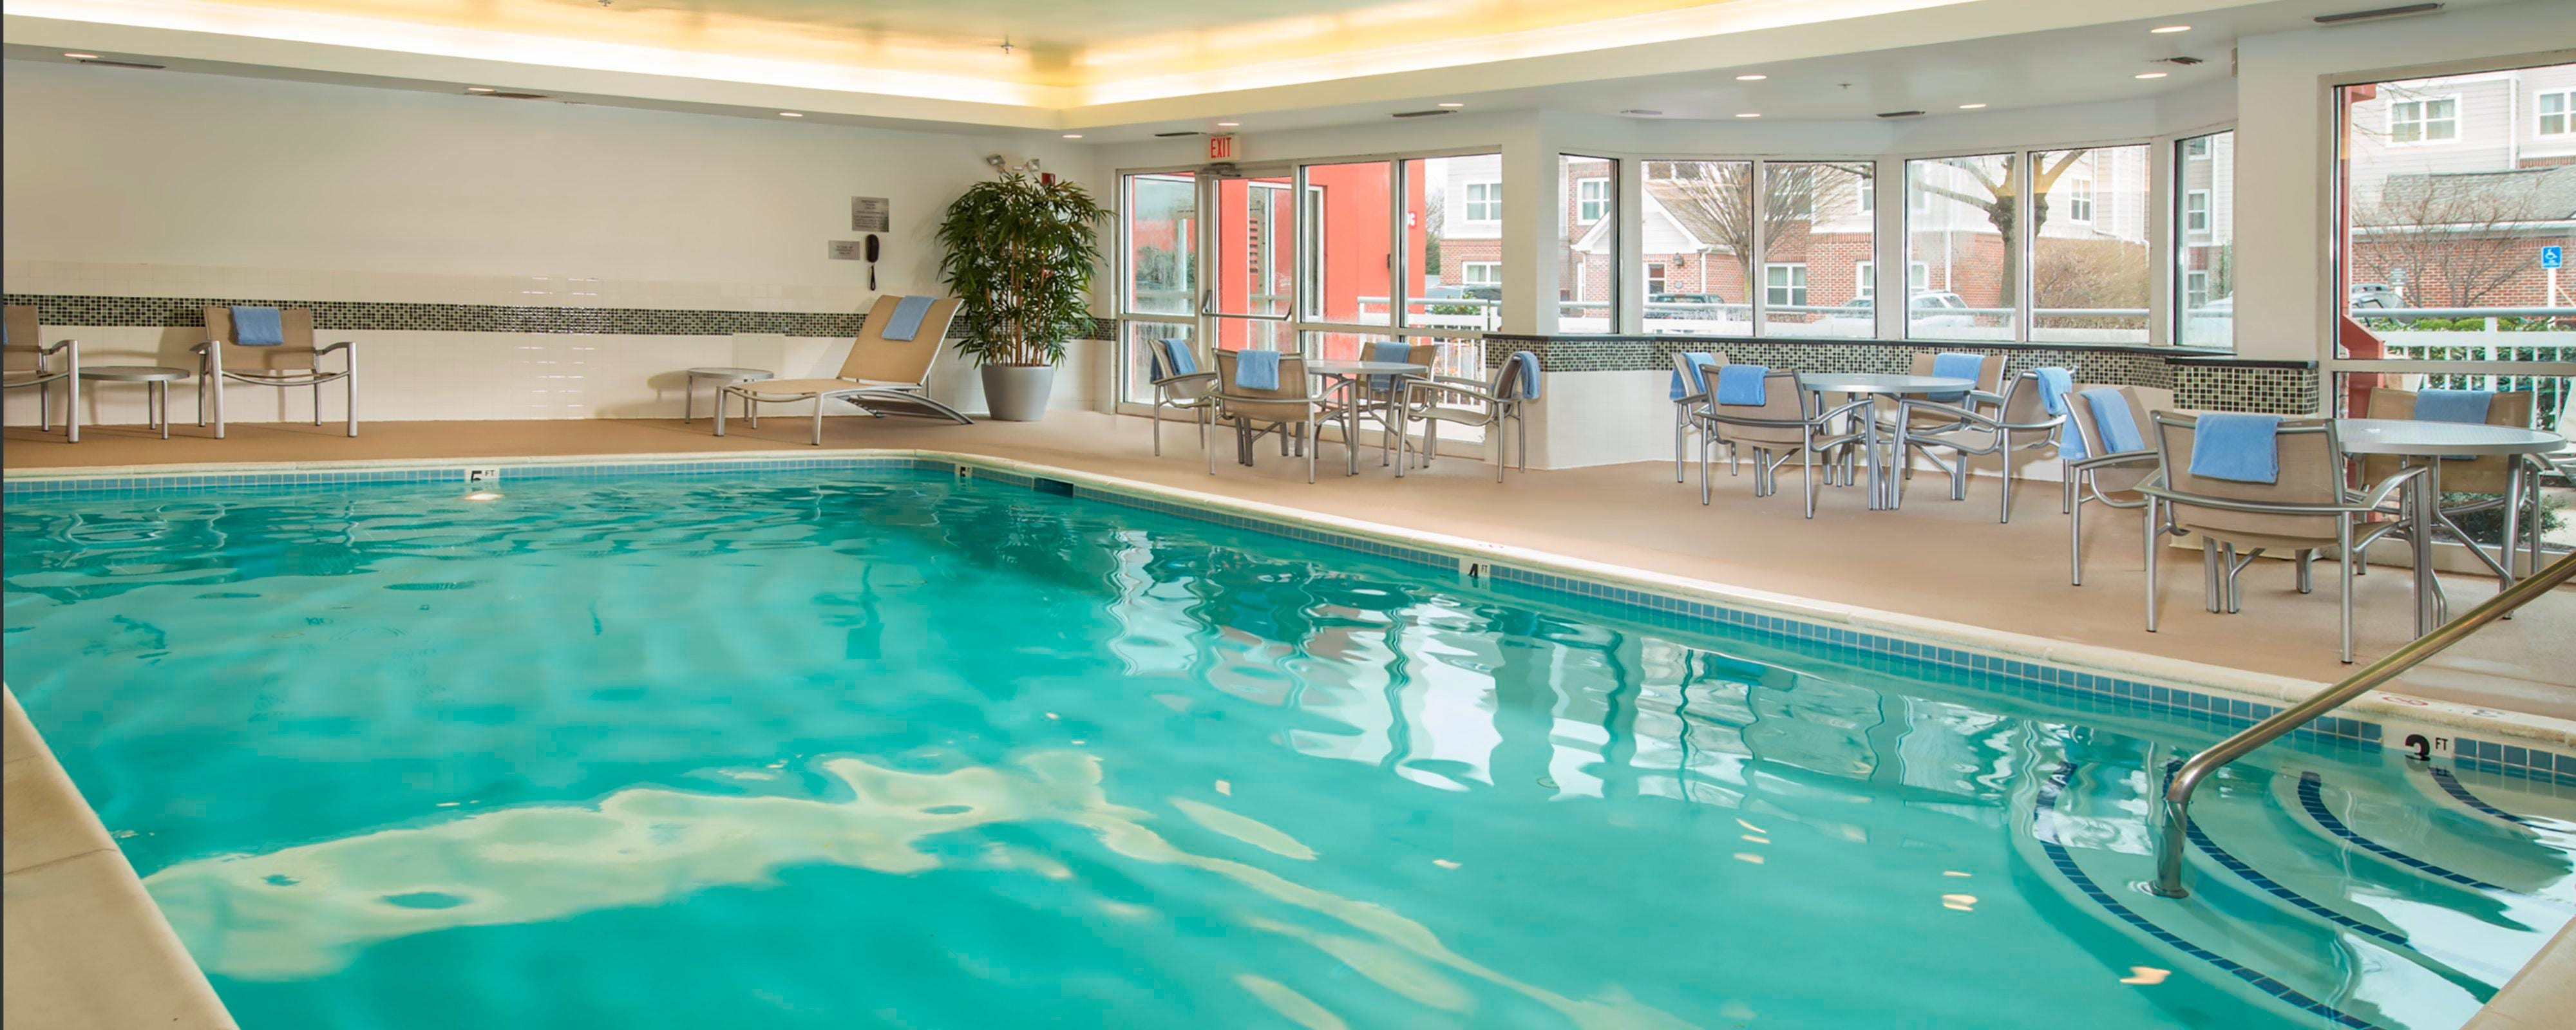 Frederick Fairfield Hotel Indoor Pool